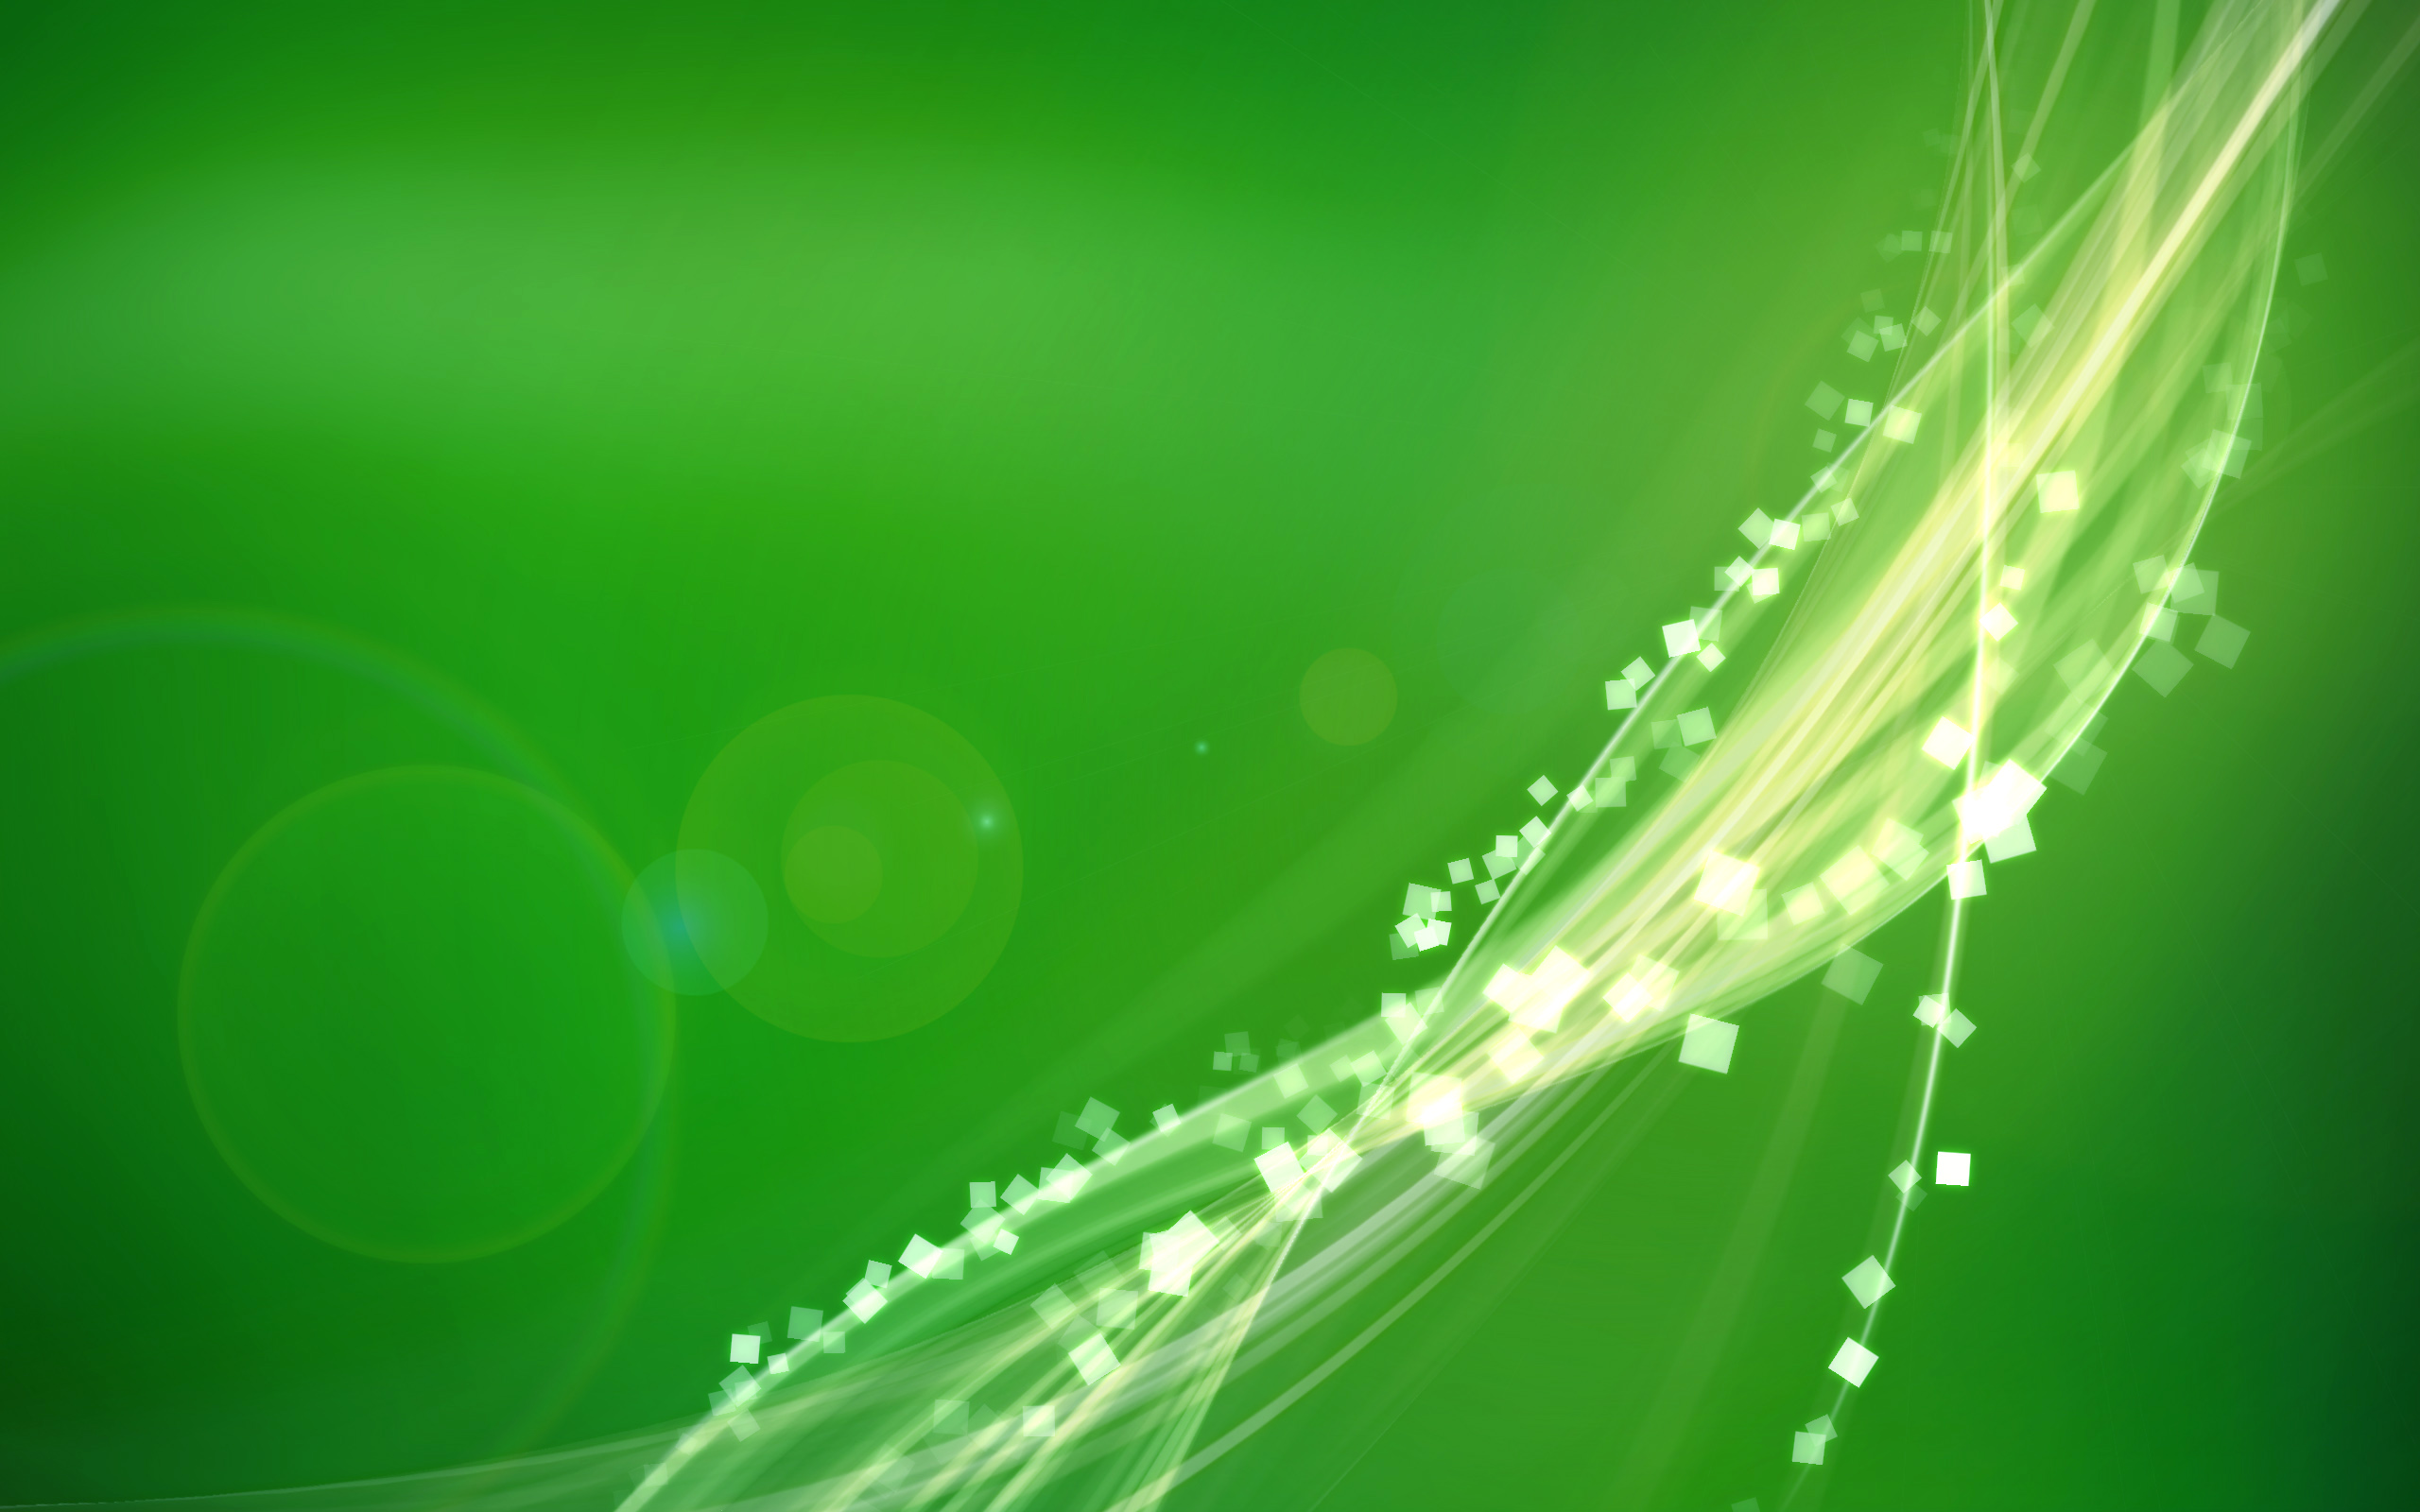 Hd wallpaper green - Hd Wallpaper Background Id 36074 2560x1600 Abstract Green